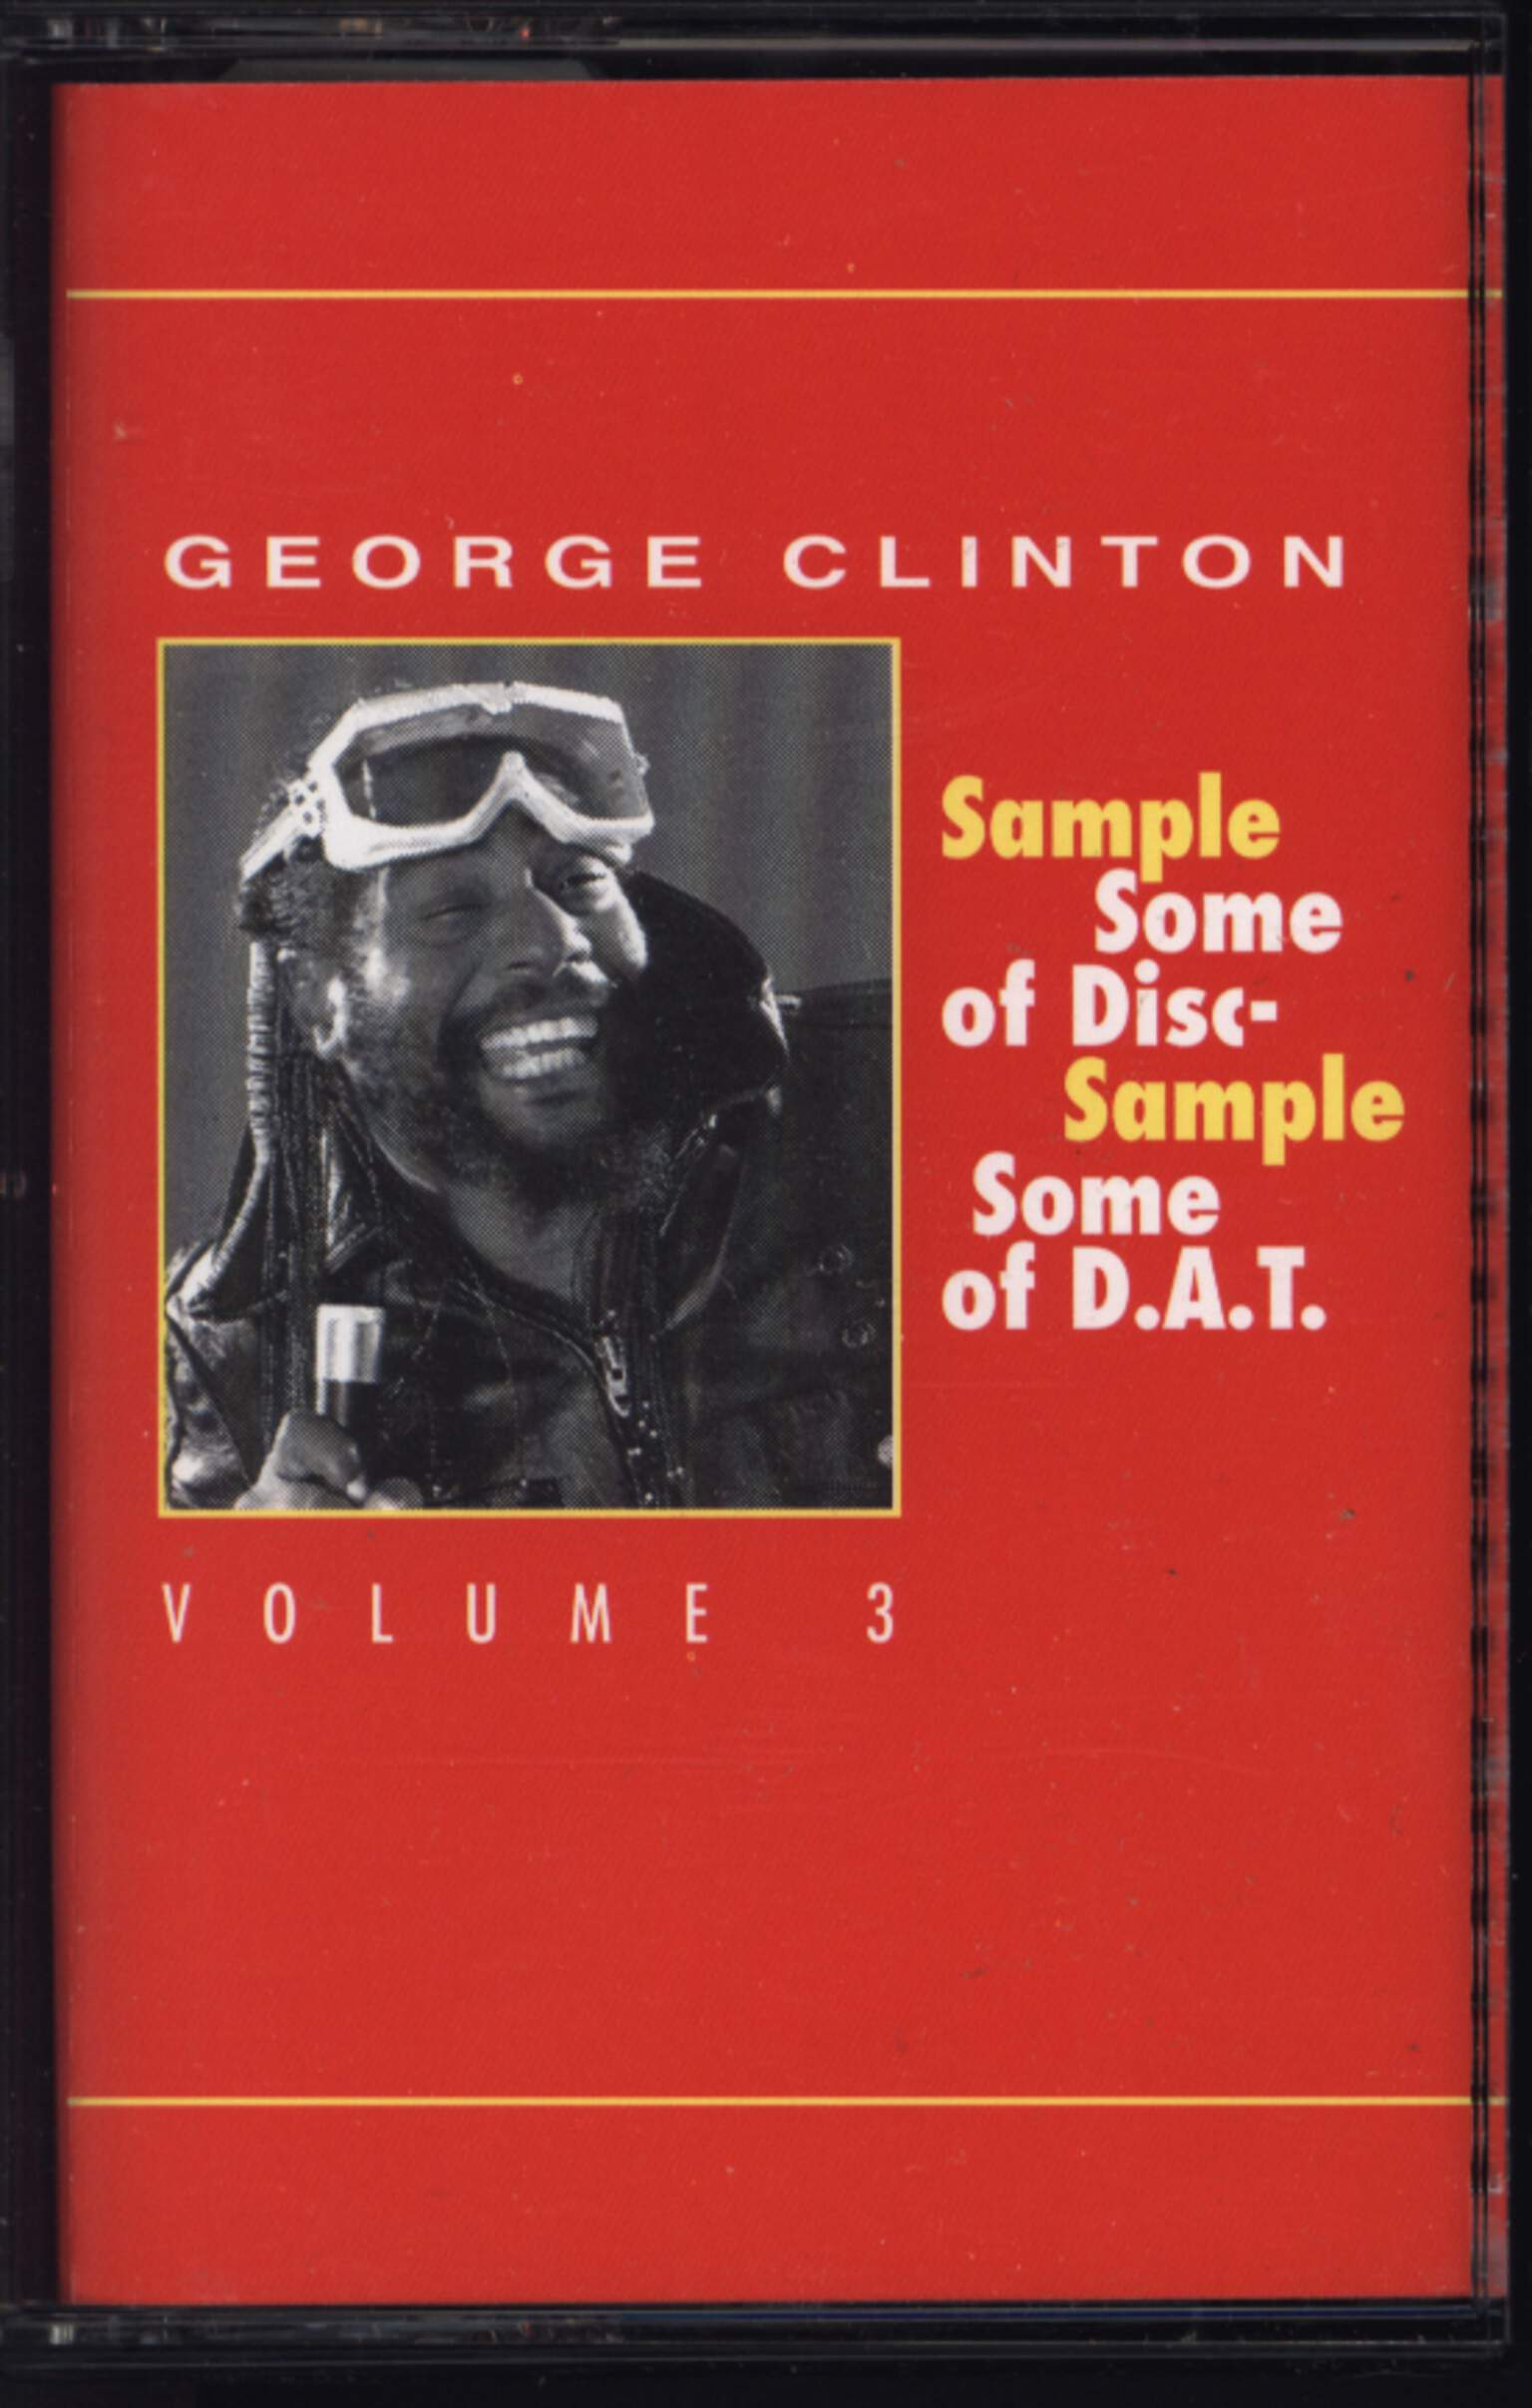 George Clinton: Sample Some Of Disc - Sample Some Of D.A.T. Volume 3, Compact Cassette